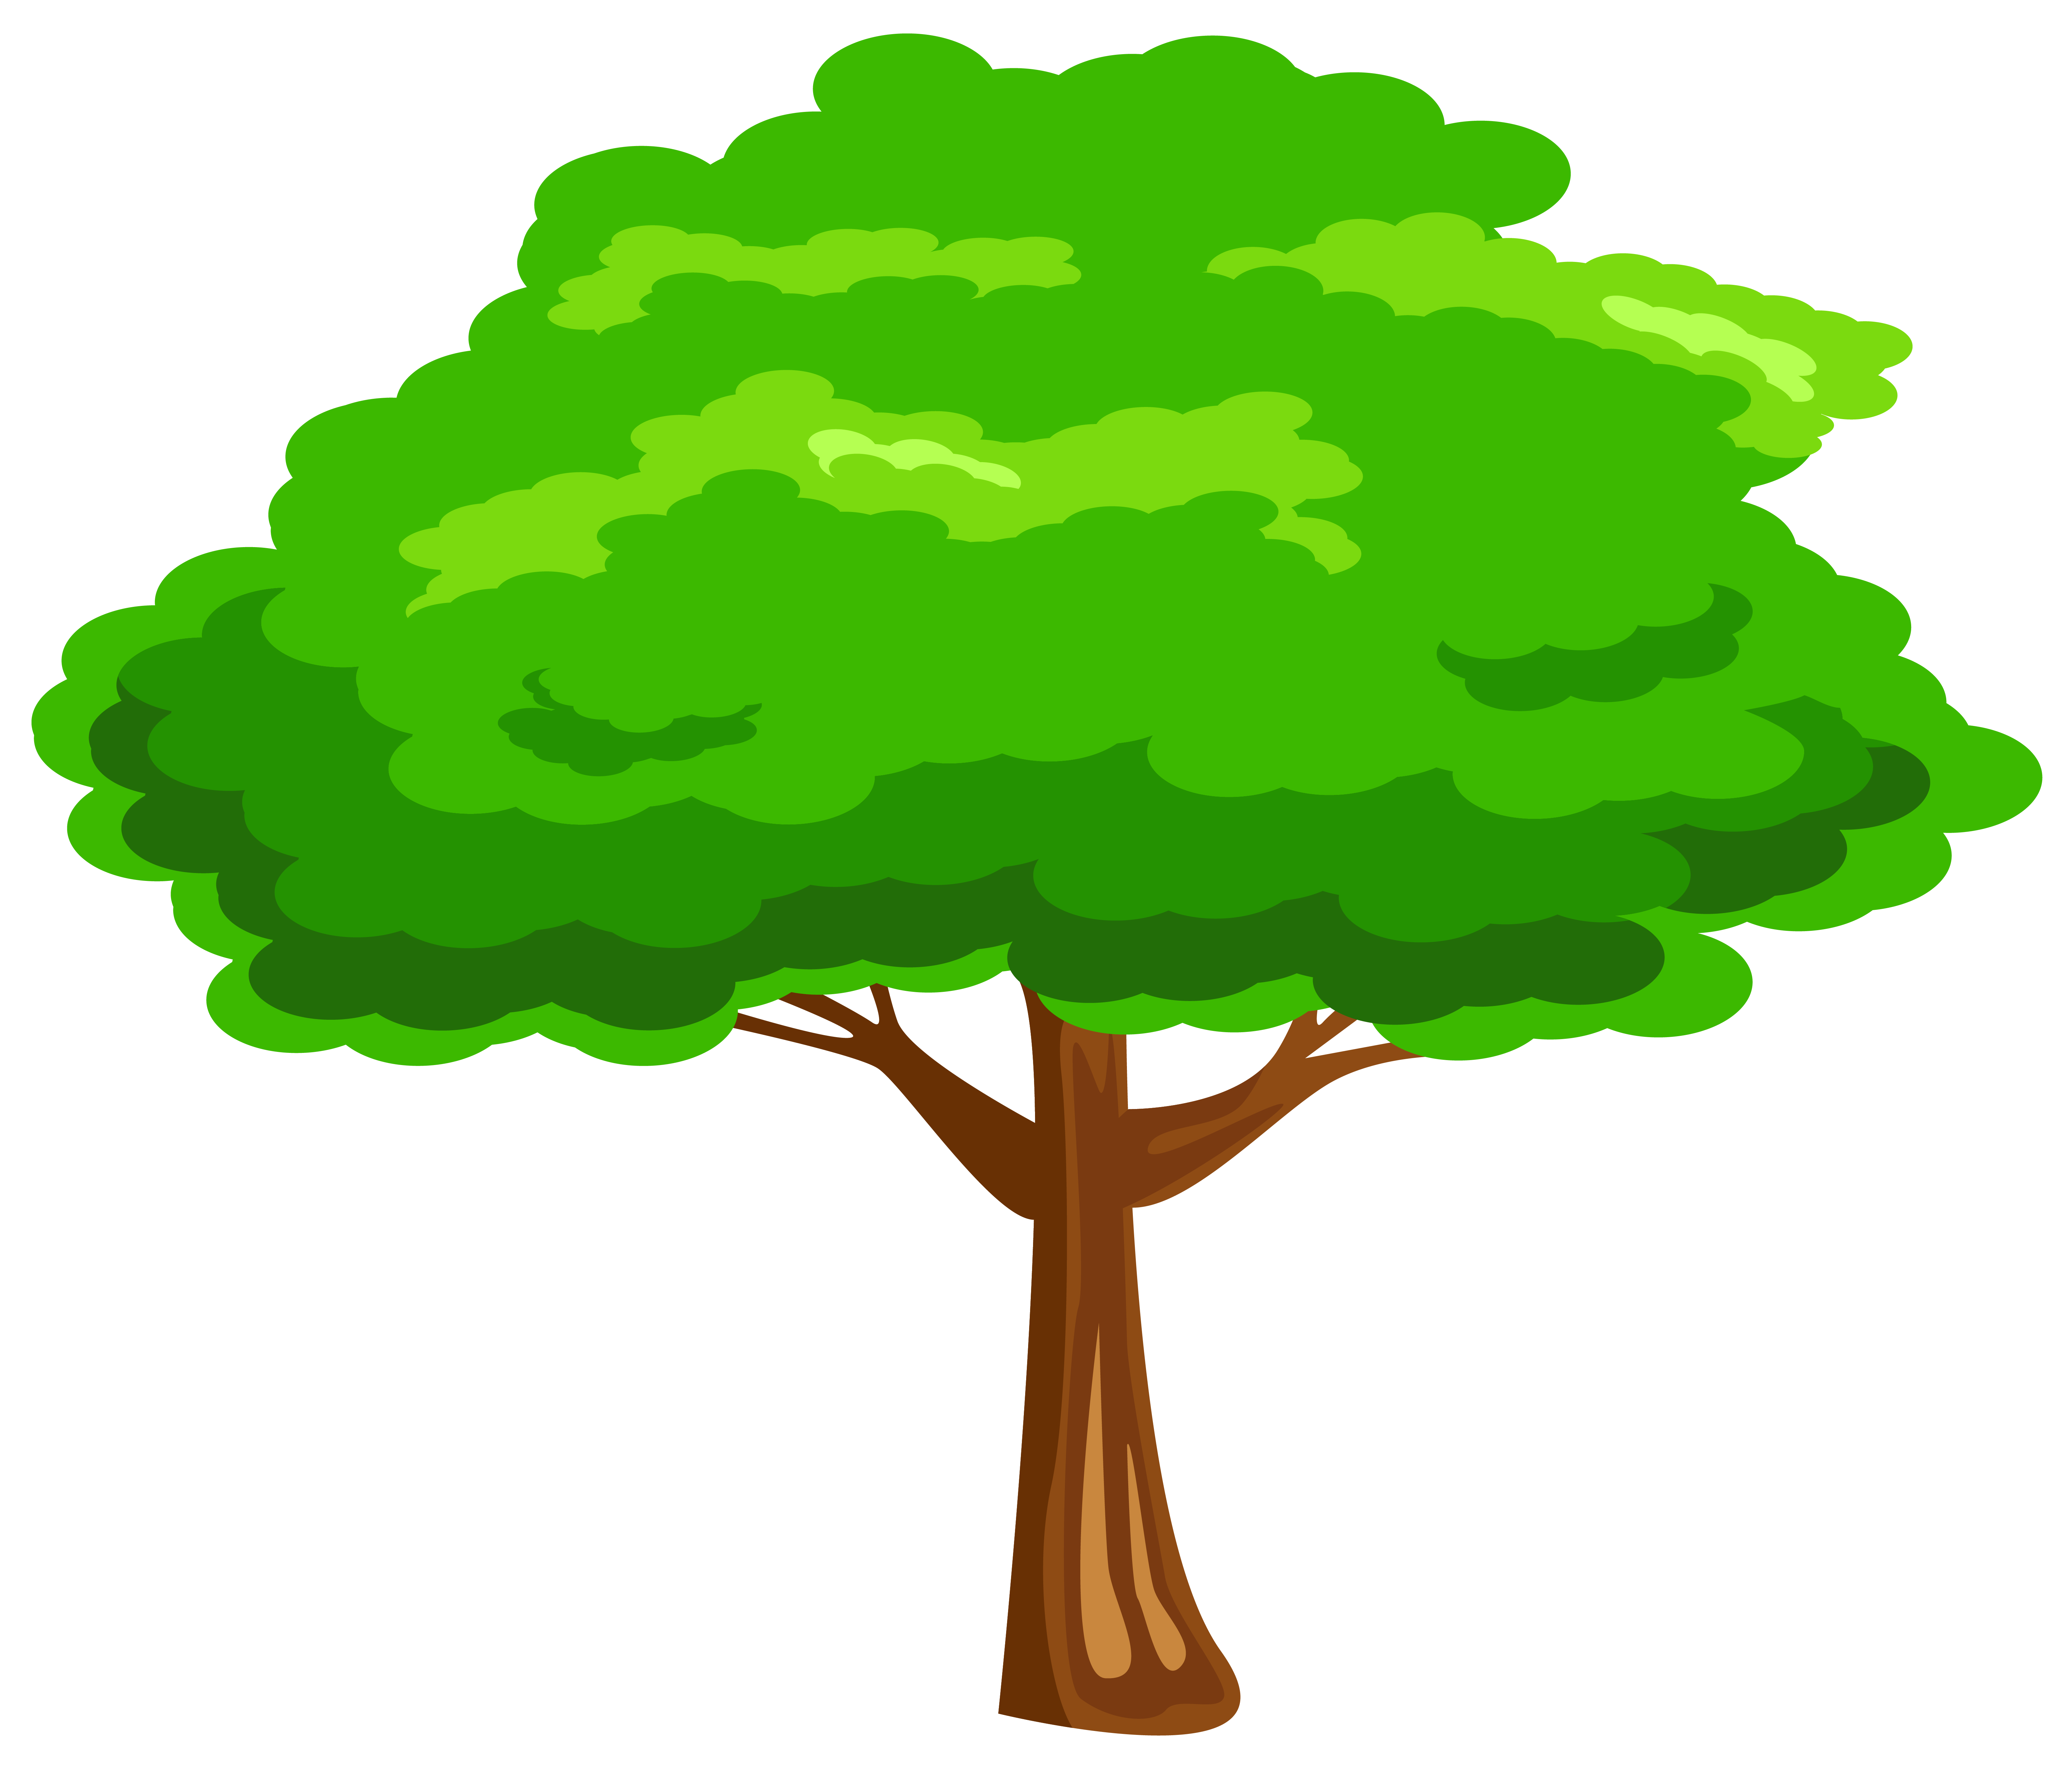 tree clipart clipground cliparts